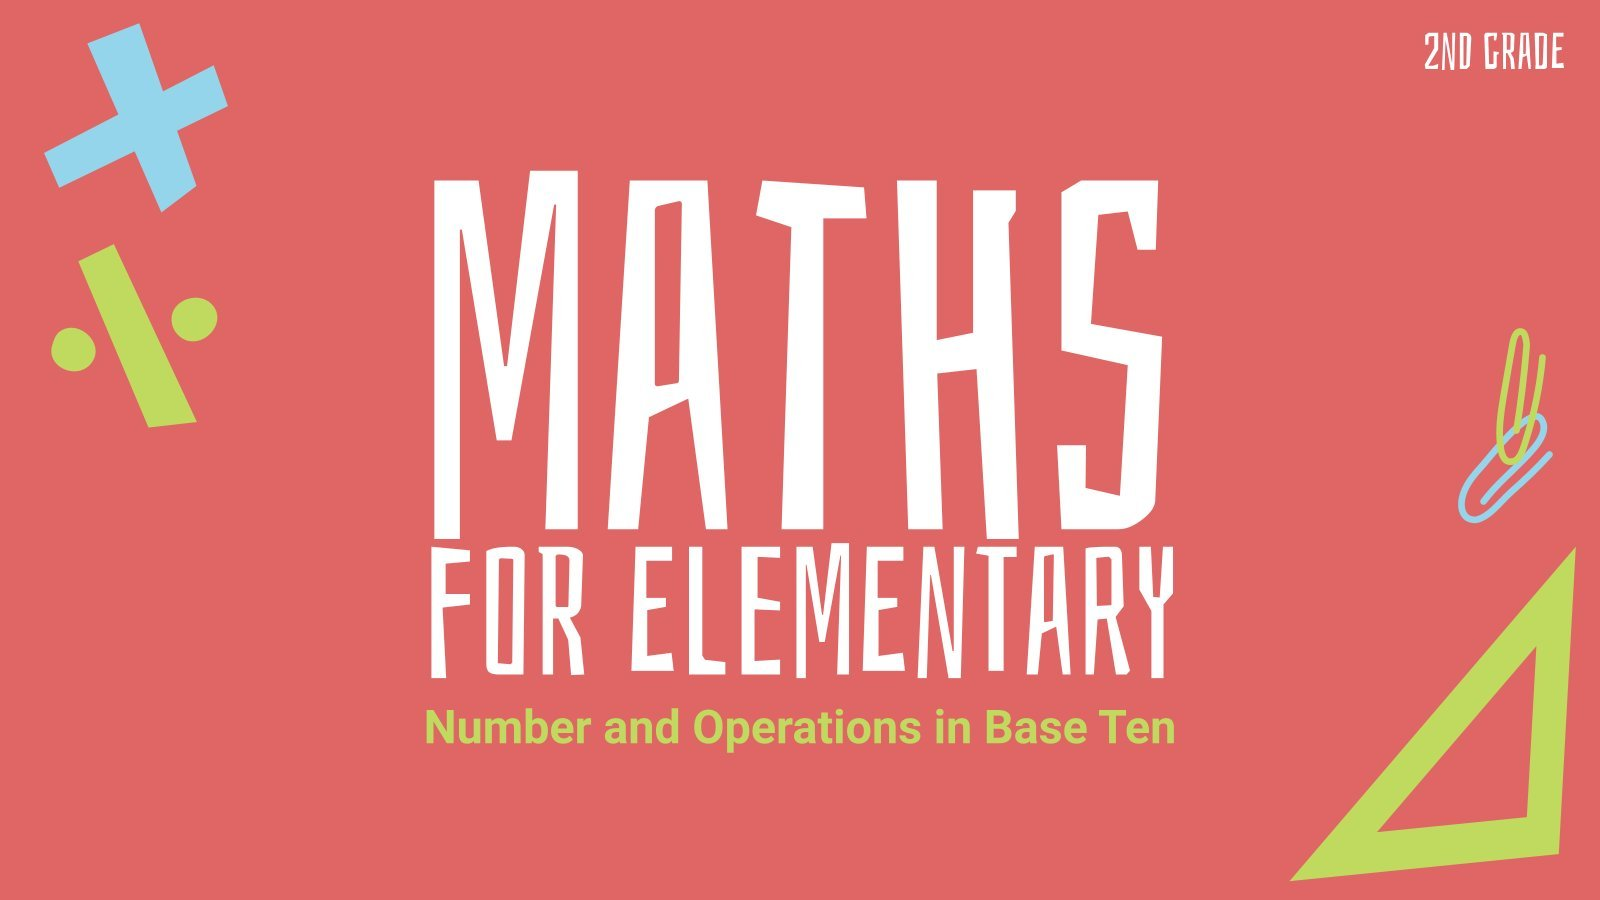 Number and Operations in Base Ten - Maths for Elementary presentation template